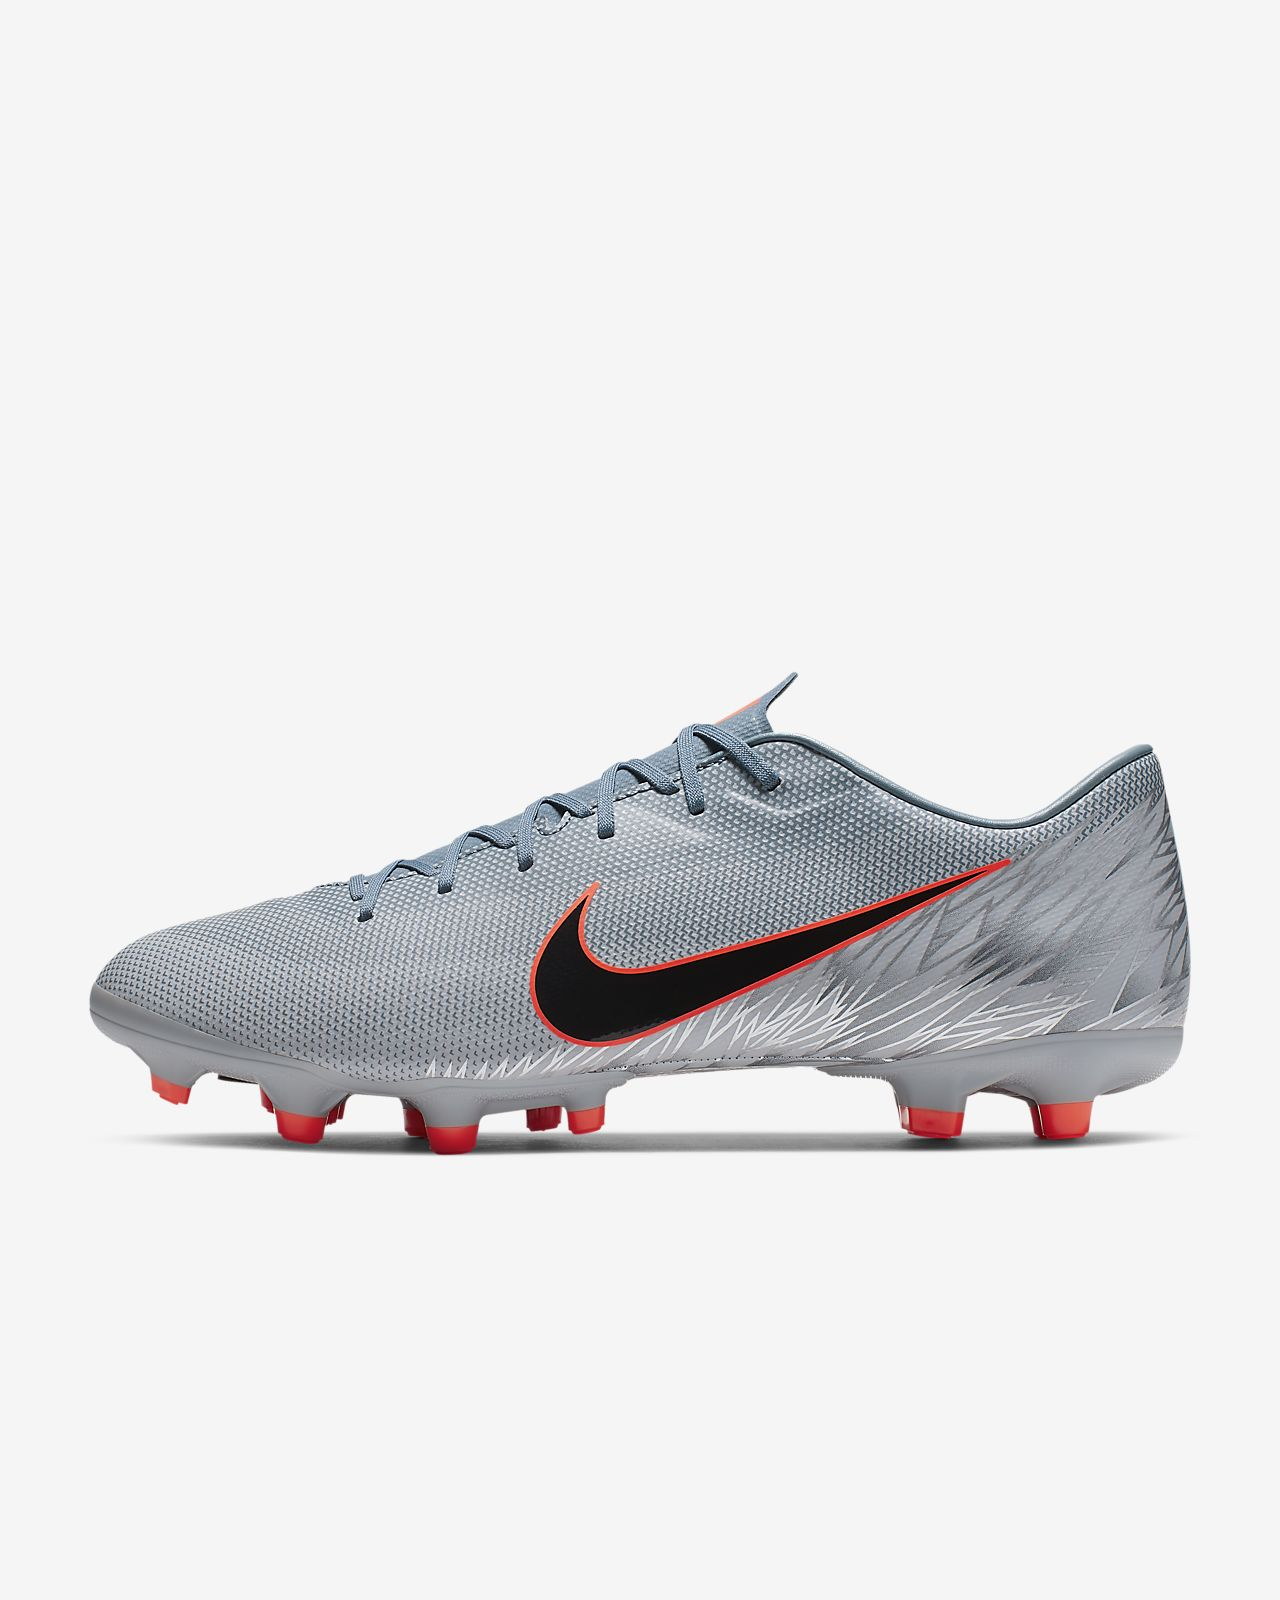 9c8b6d80ffc Nike Vapor 12 Academy MG Multi-Ground Football Boot. Nike.com GB